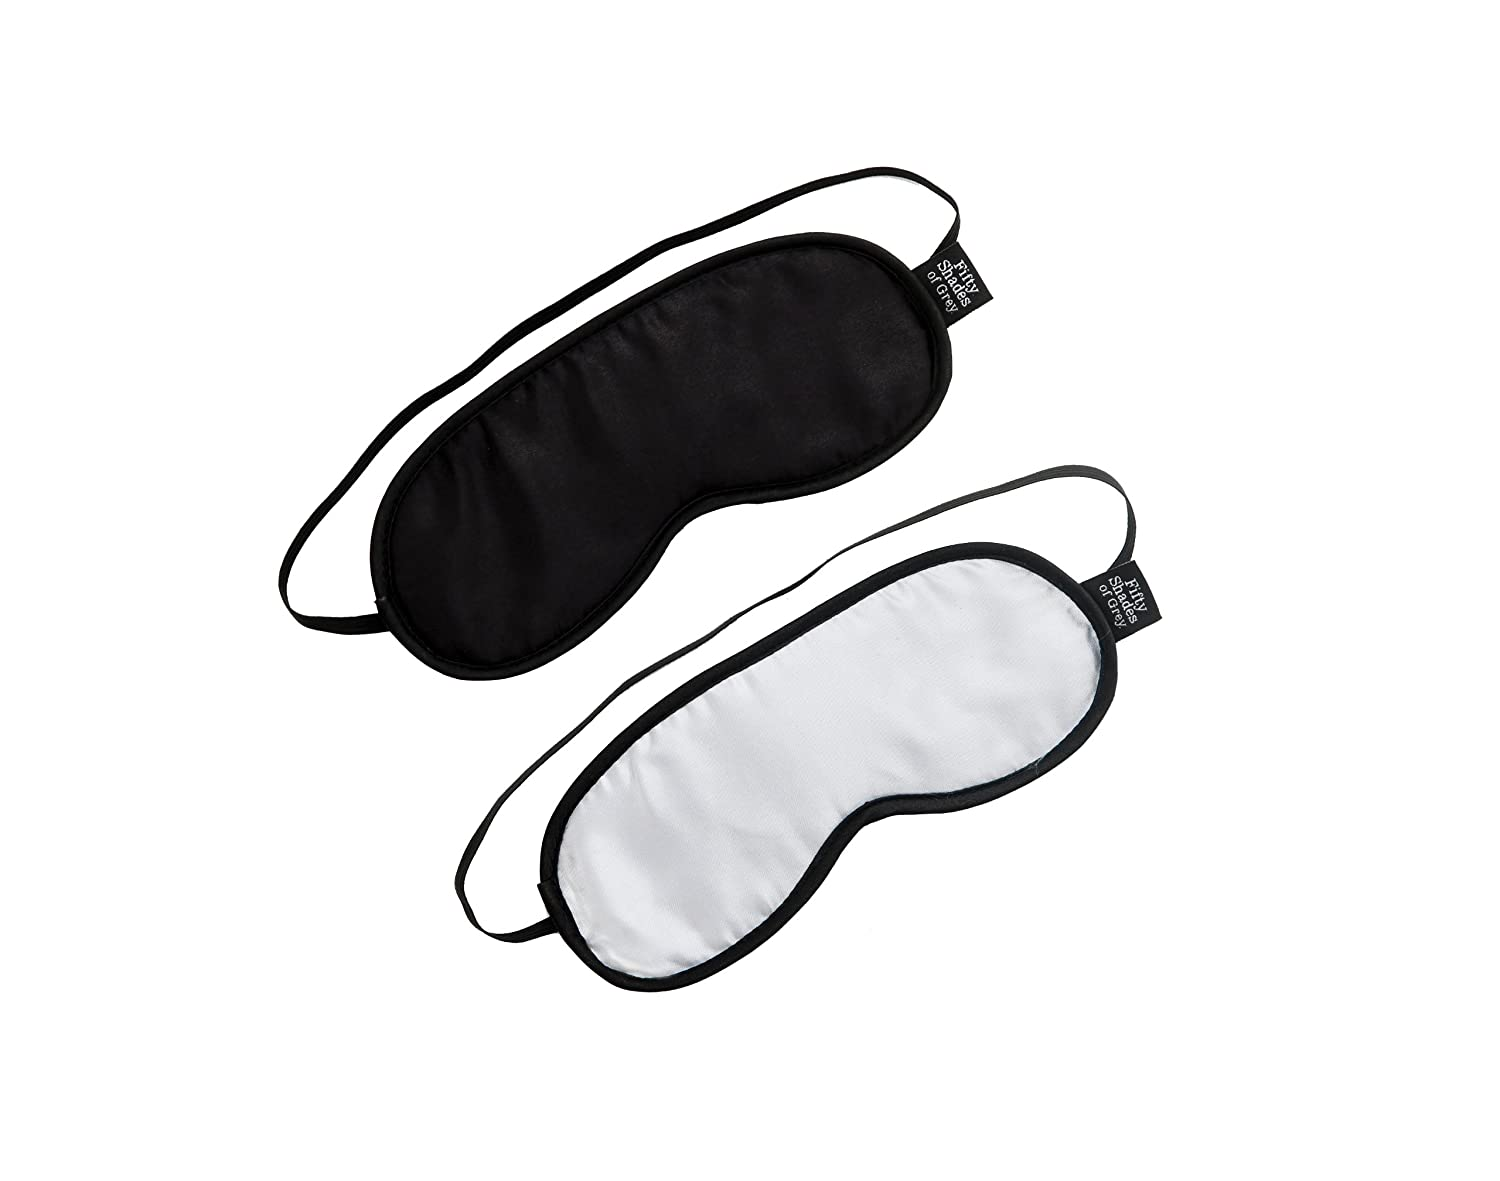 Fifty Shades Of Grey No Peeking Blindfold Twin Pack стимулятор клитора fulla av